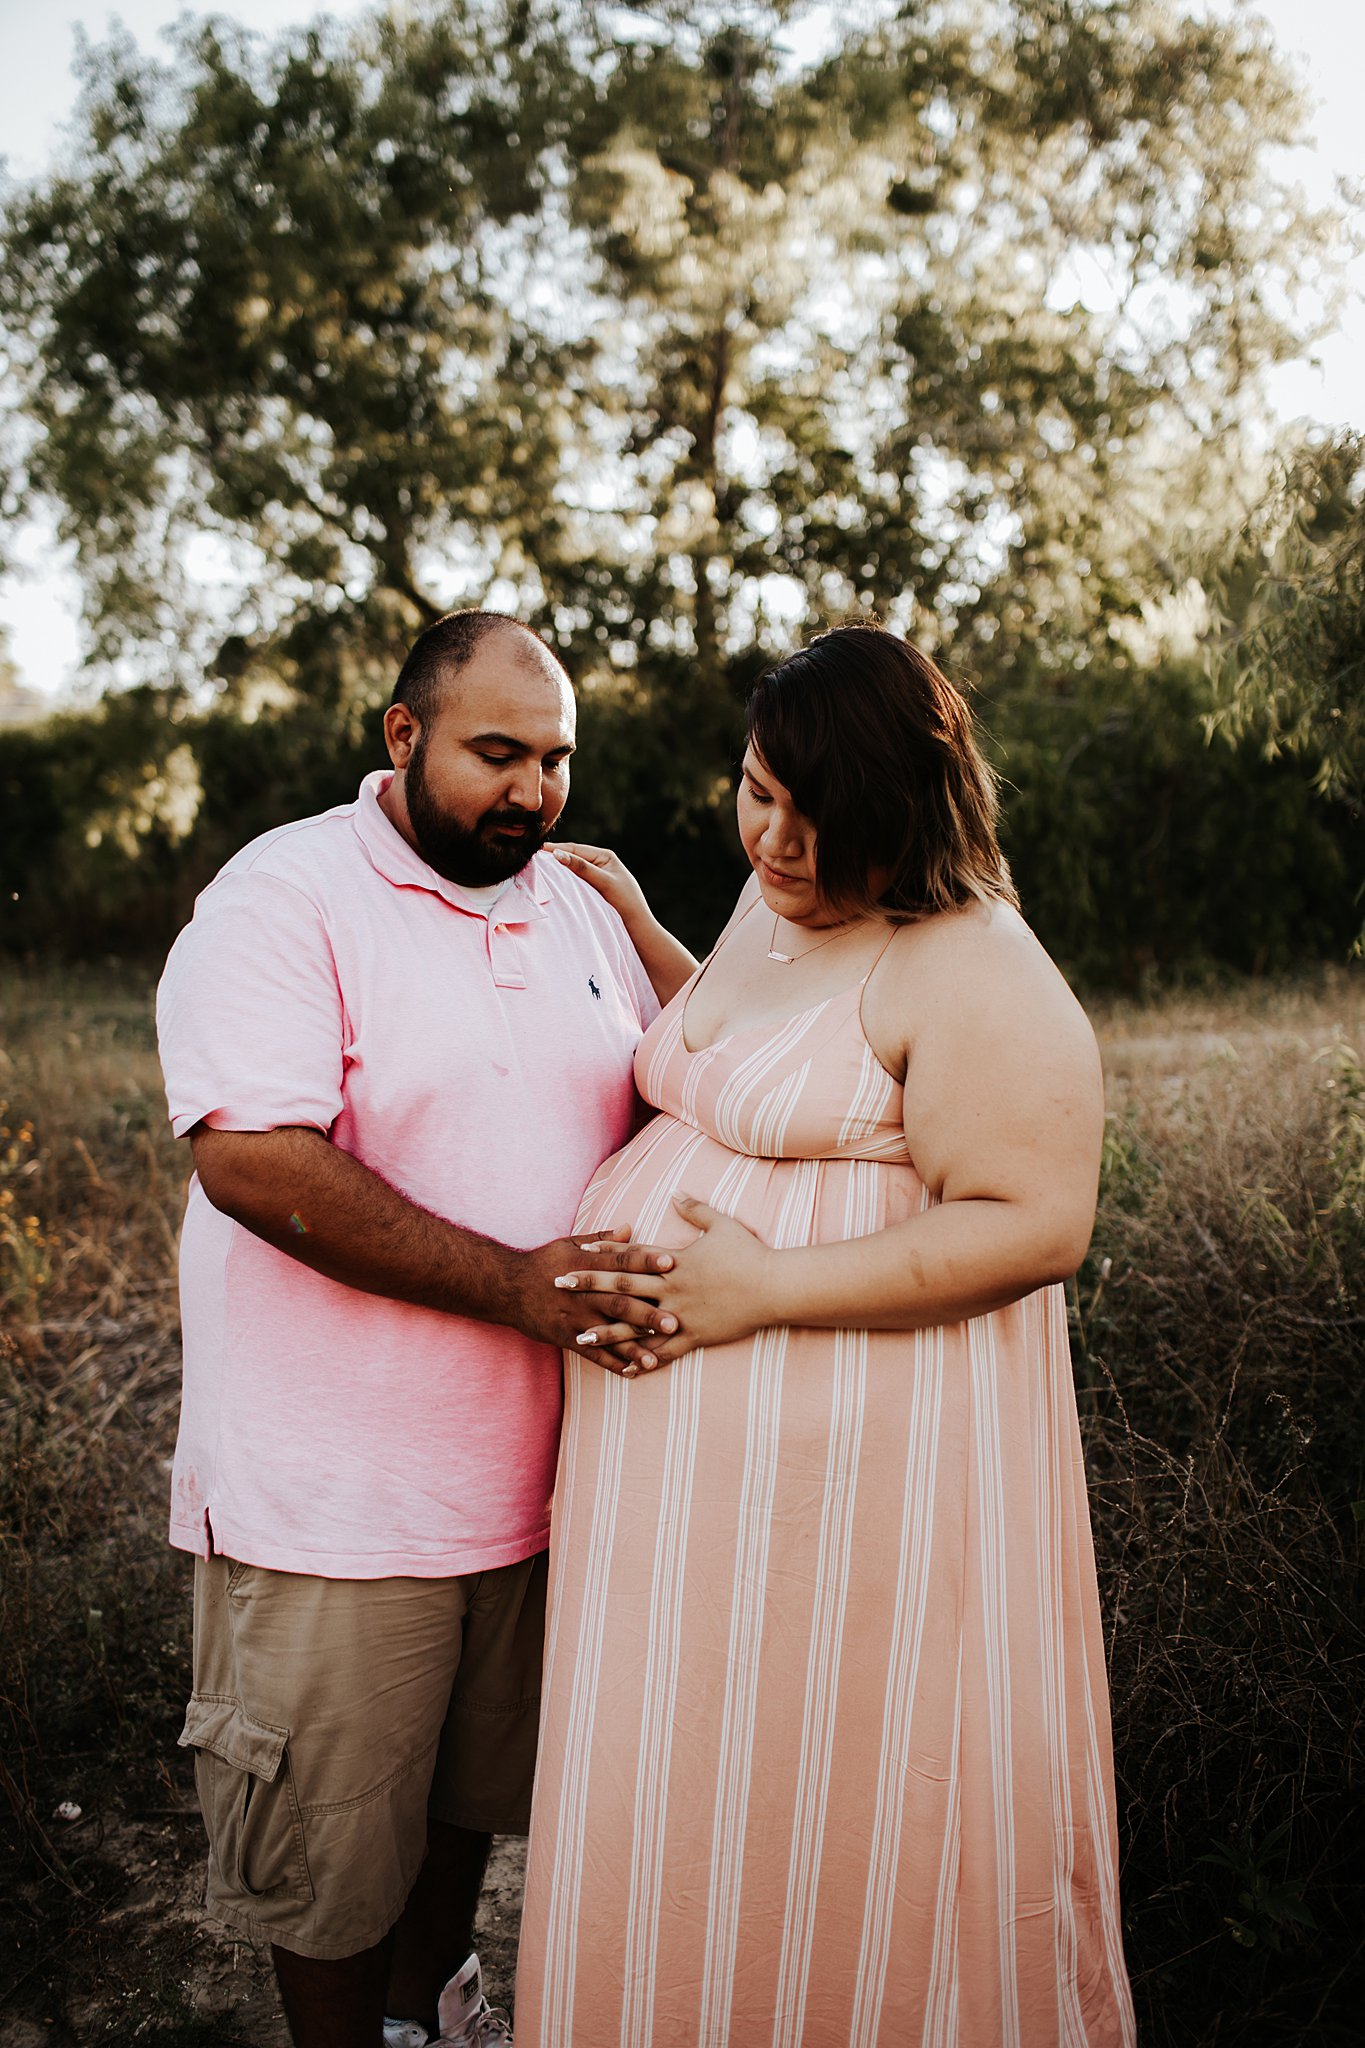 Vanny-San-Antonio-Maternity-Photographer-43_WEB.jpg